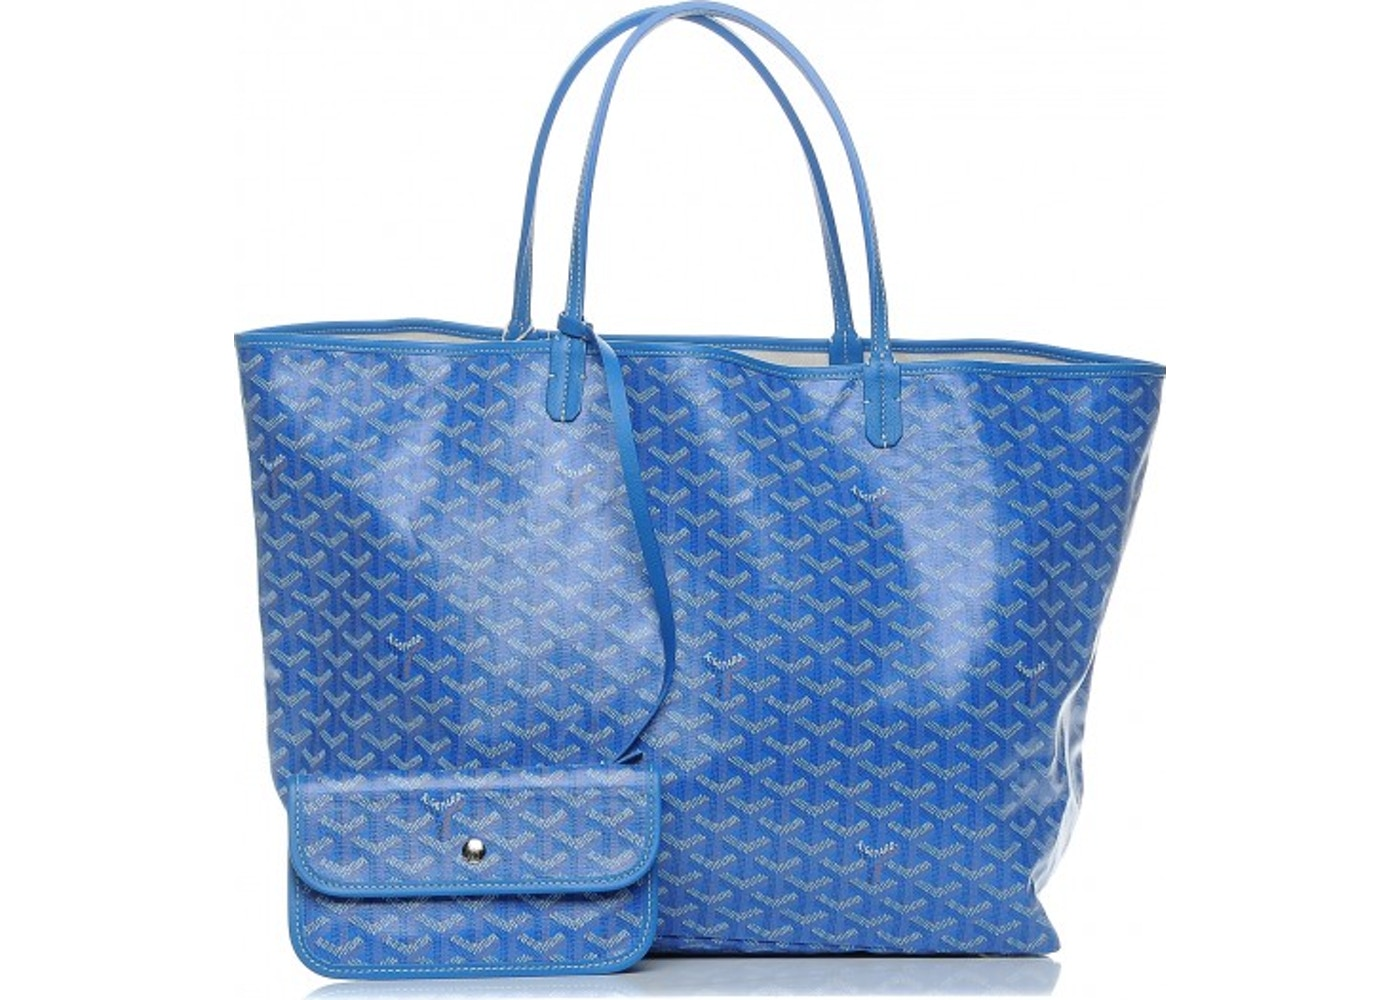 08fa481d532 This blue Goyard tote is a must-have if you are looking for a handbag that  will add a touch of chic to your life all while maintaining a classic